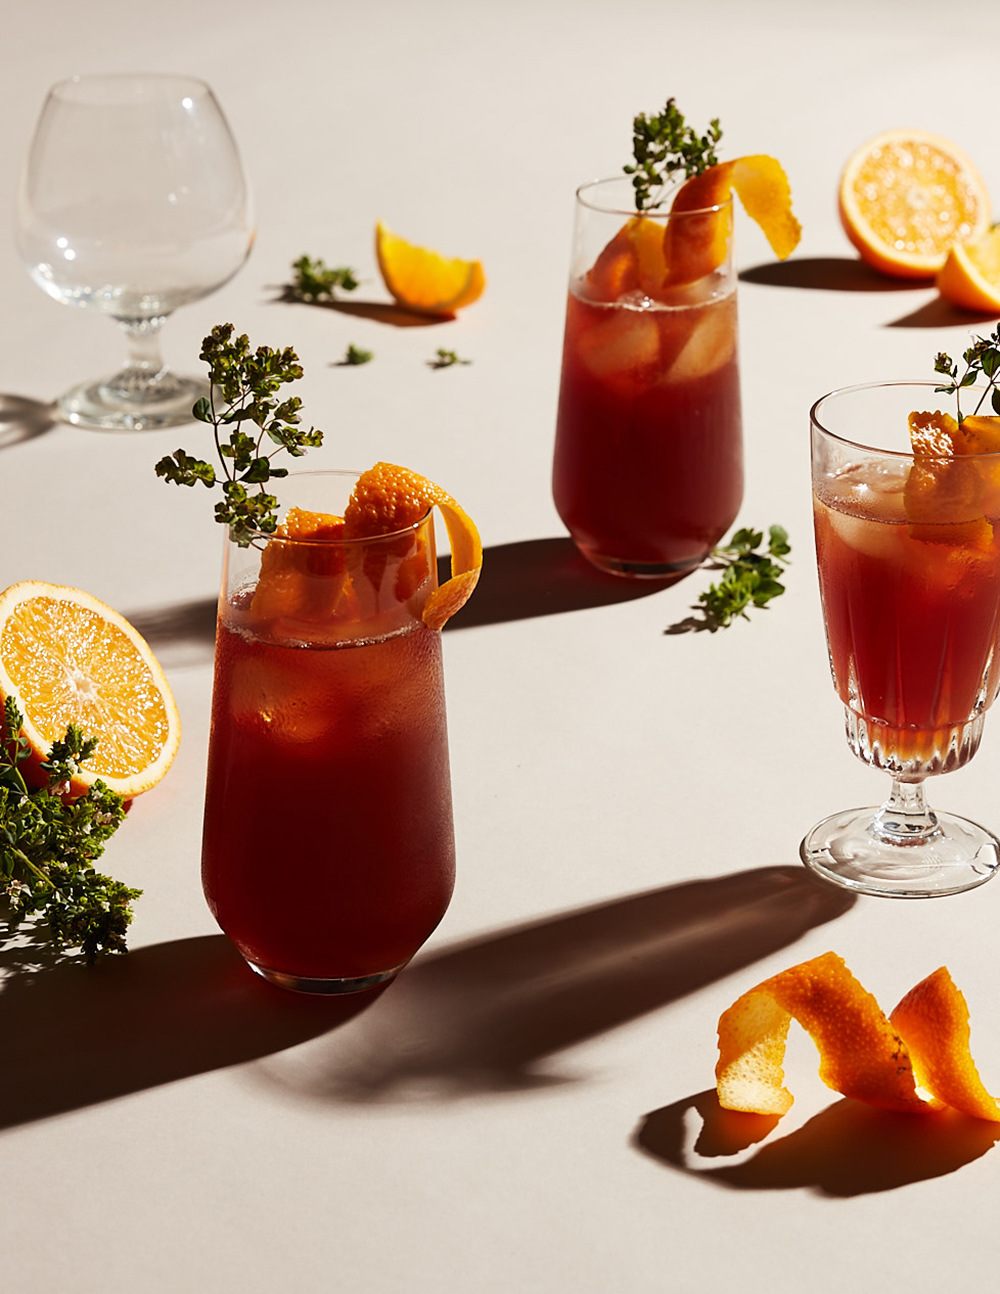 orange-oregano-negroni-cocktail-drinks-styling-prop-stylist-lifestyle-artdirector-creative-lauren-becker.jpg